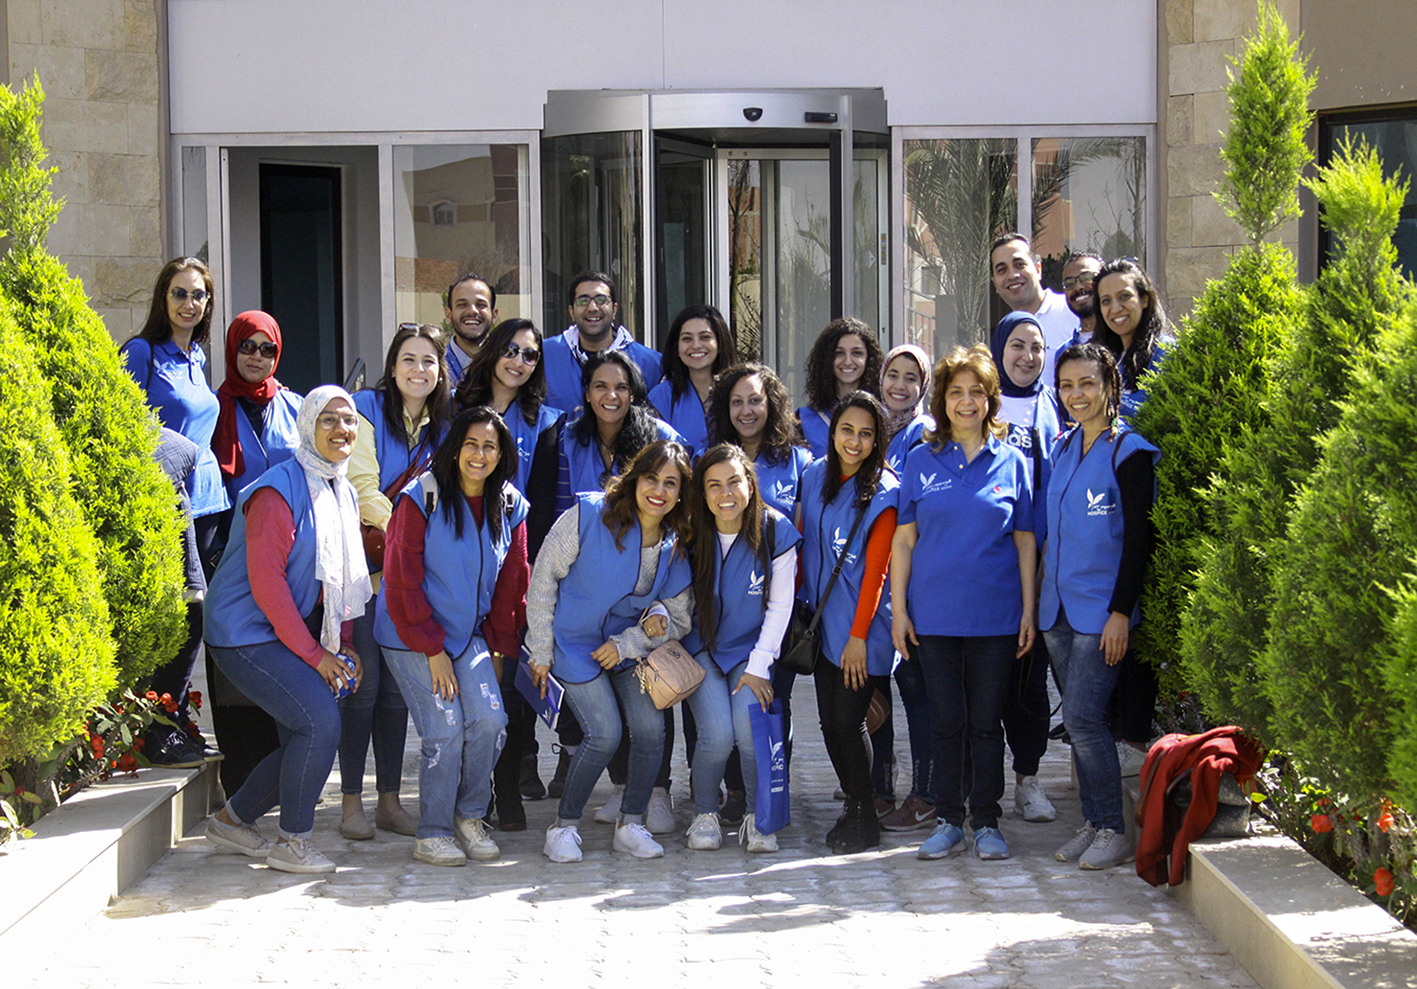 Recruiting Volunteers for Hospice is a challenging task in Egypt